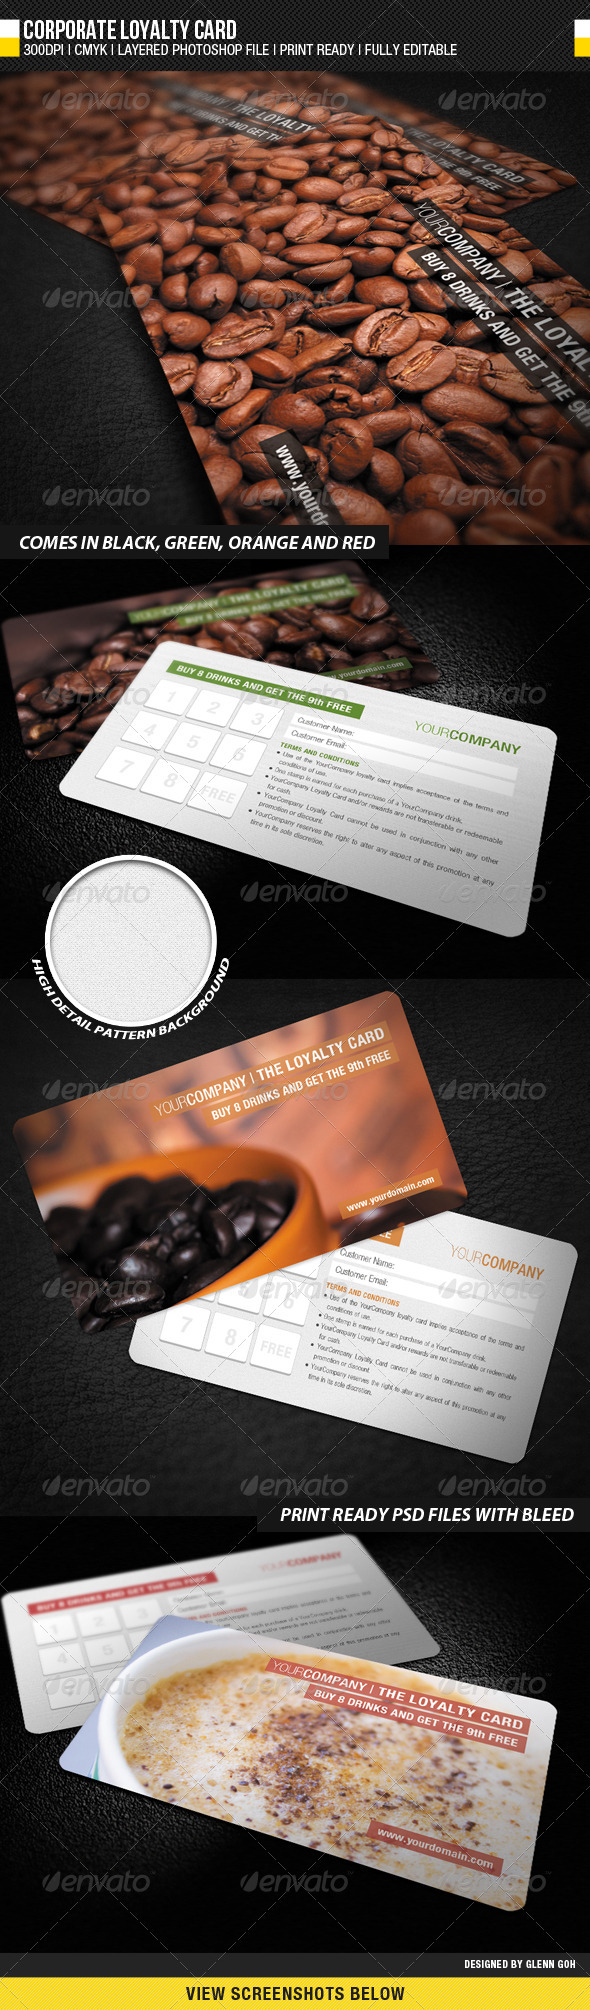 Corporate Loyalty Card - Loyalty Cards Cards & Invites